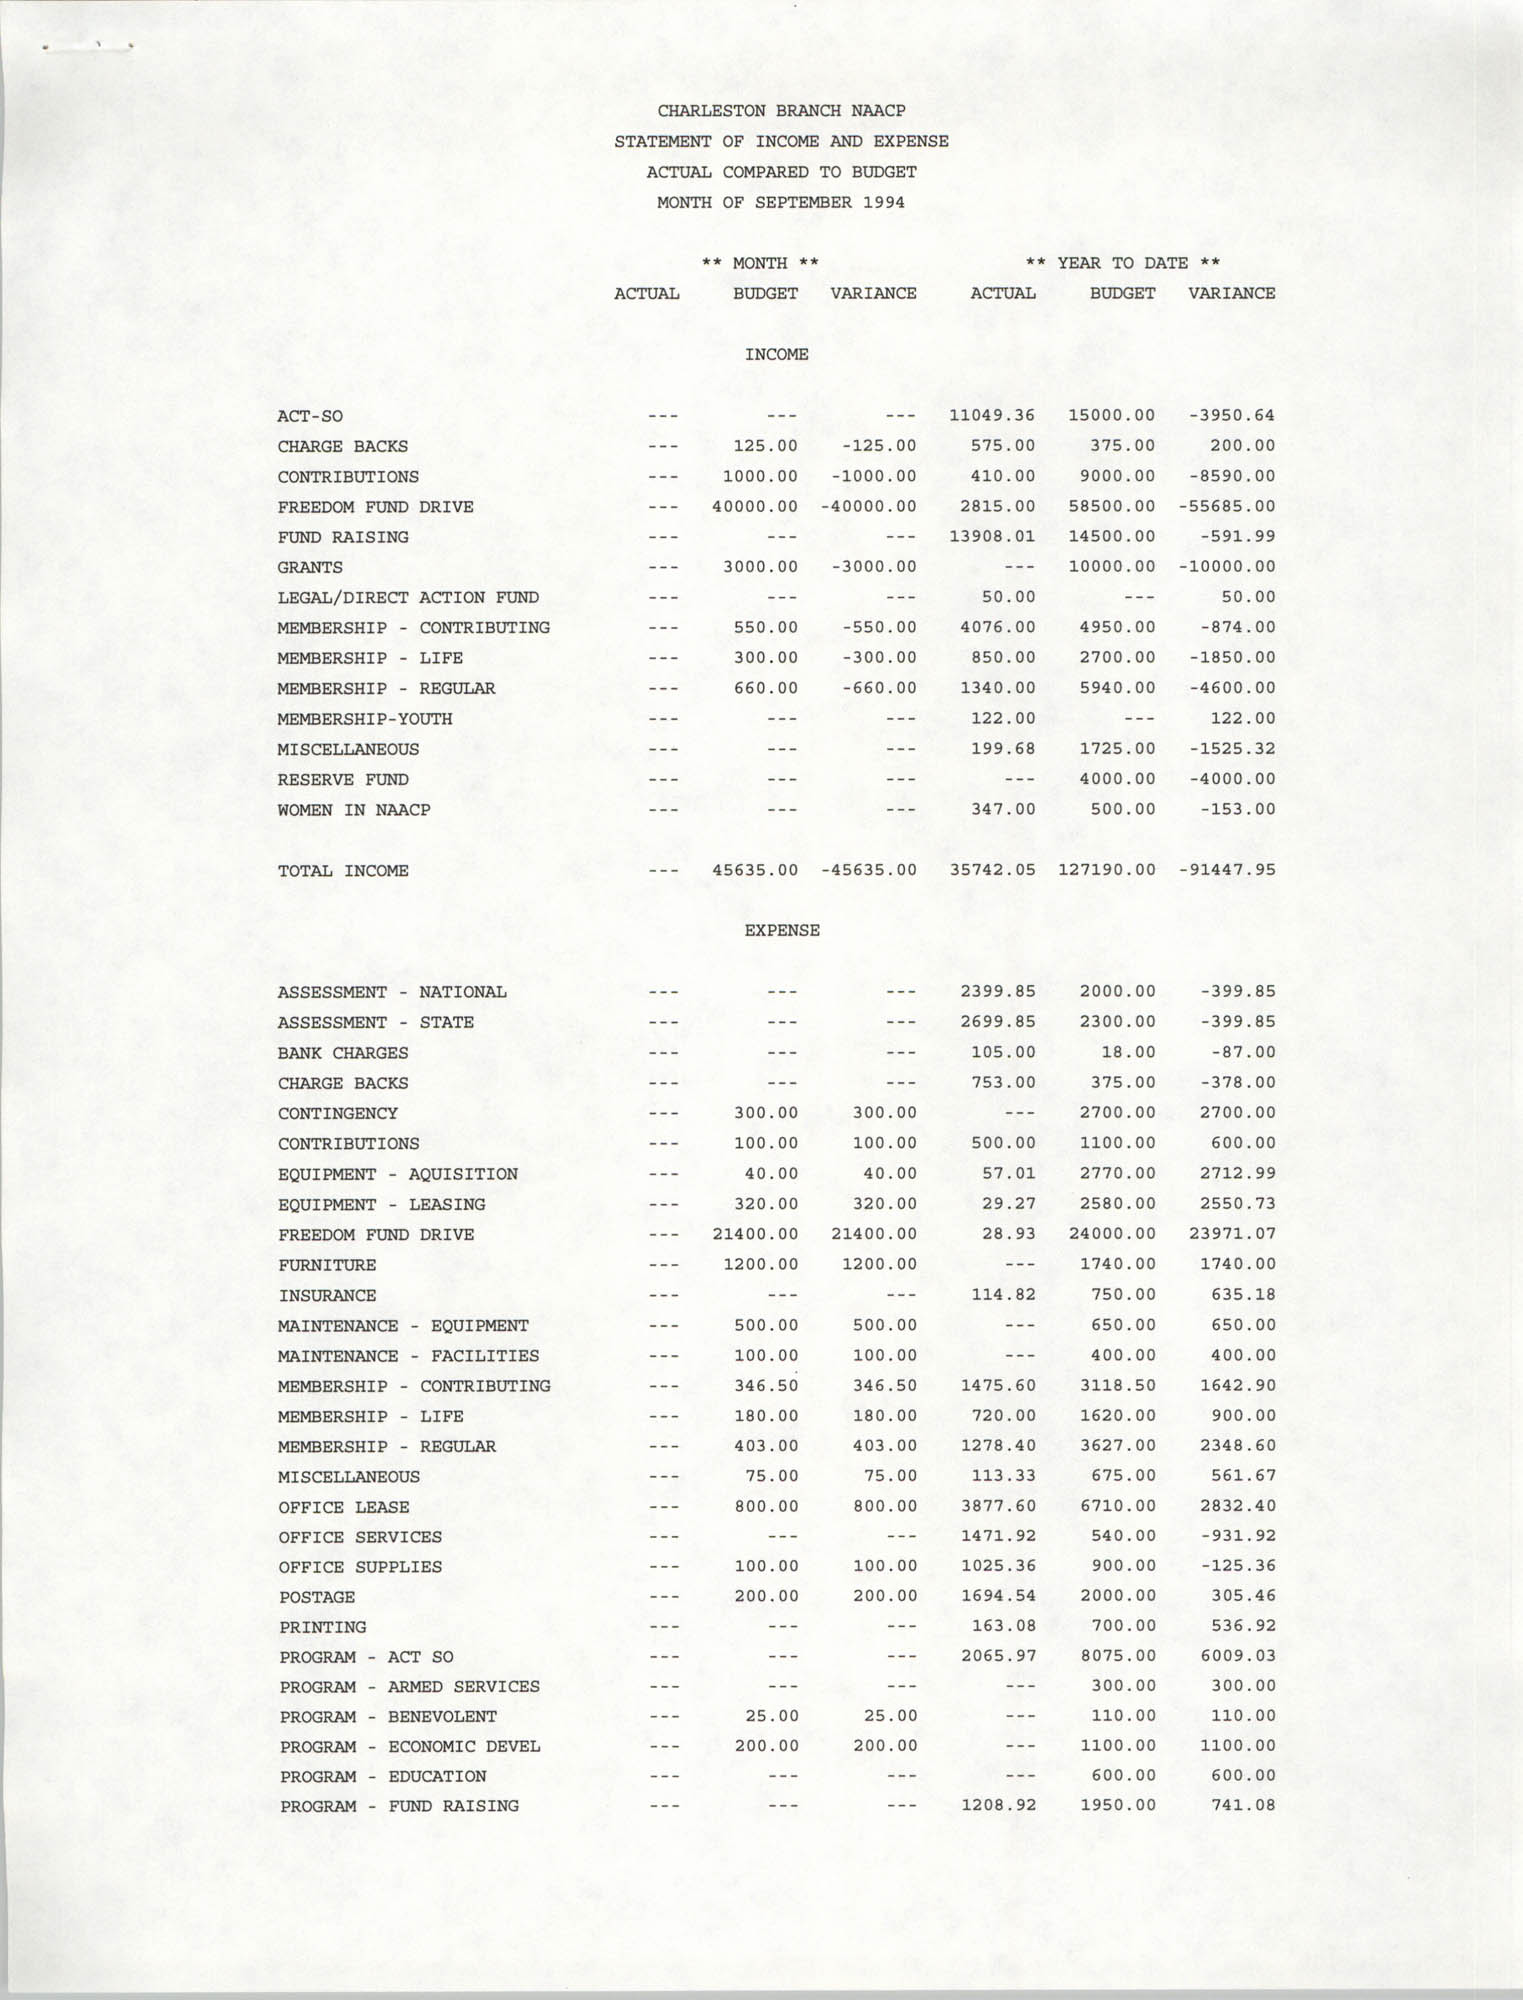 Charleston Branch of the NAACP Statement of Income and Expense, September 1994